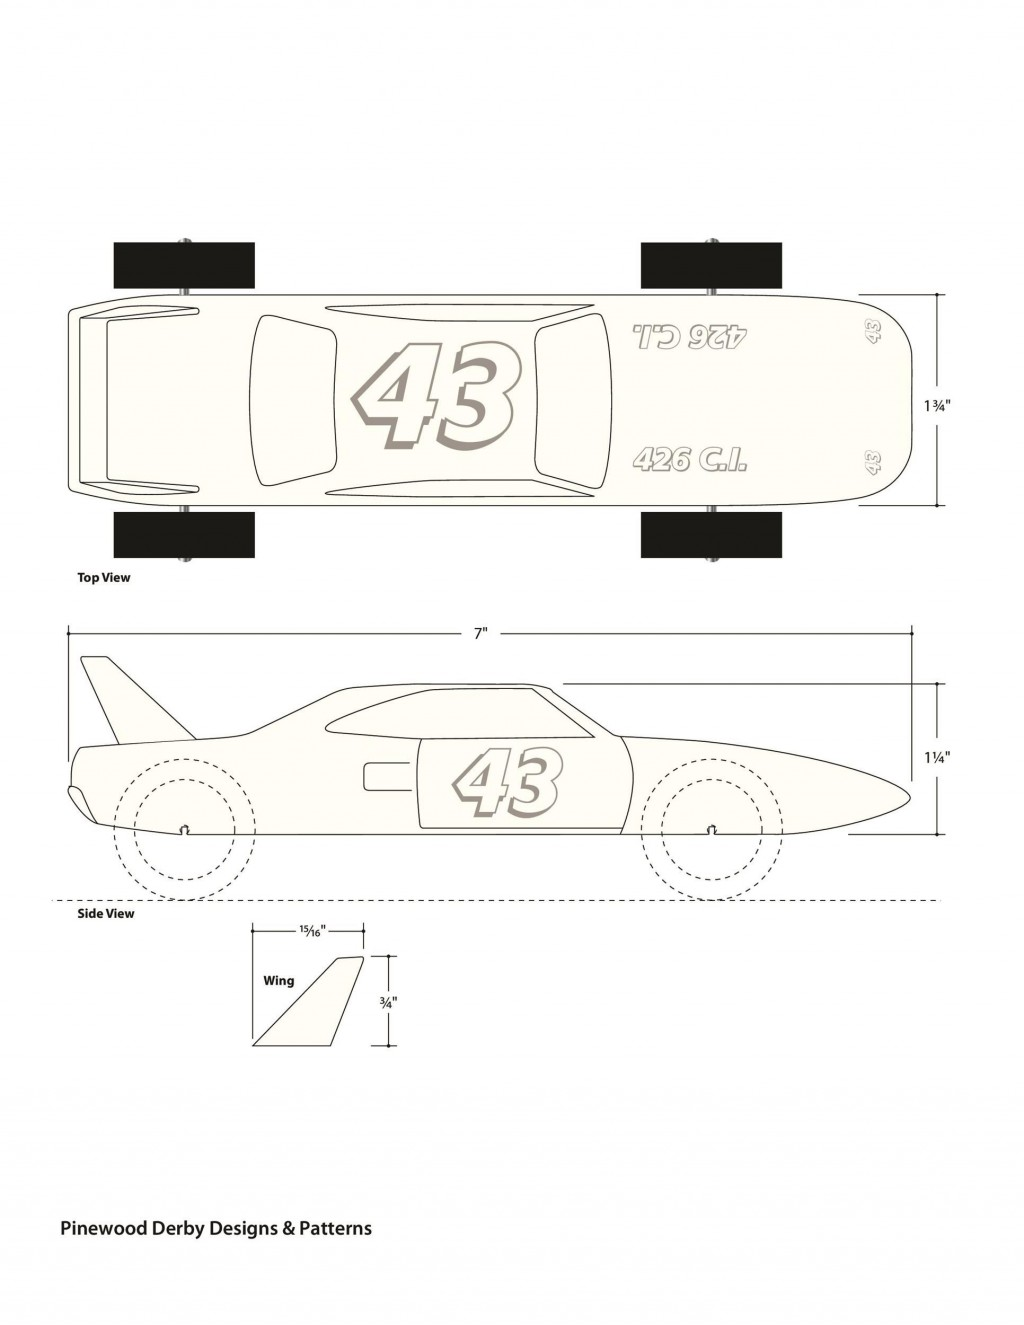 006 Dreaded Pinewood Derby Car Design Template Concept  Fast WedgeLarge